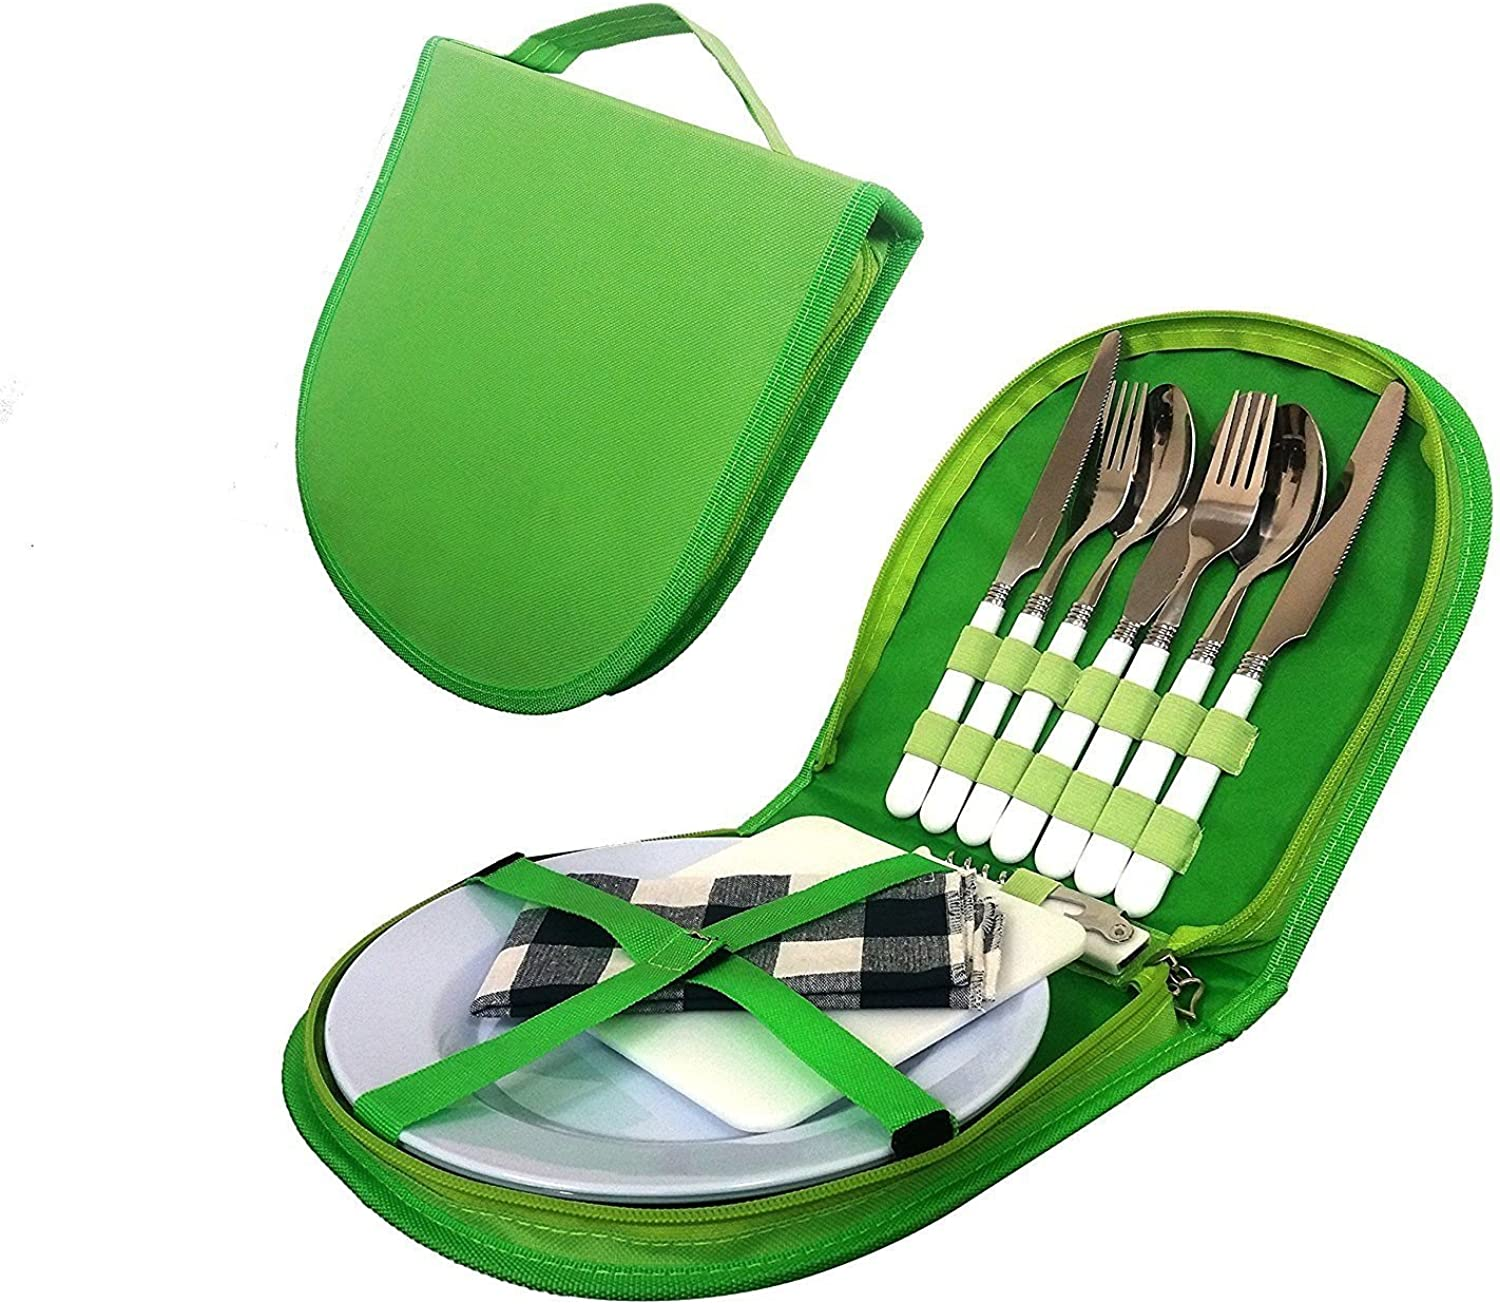 Generic nsil Picnic Kit Pouch ng Silver Cutlery Organizer Utensil Camping Si Picnic Set Organizer Camping Silverware ganiz